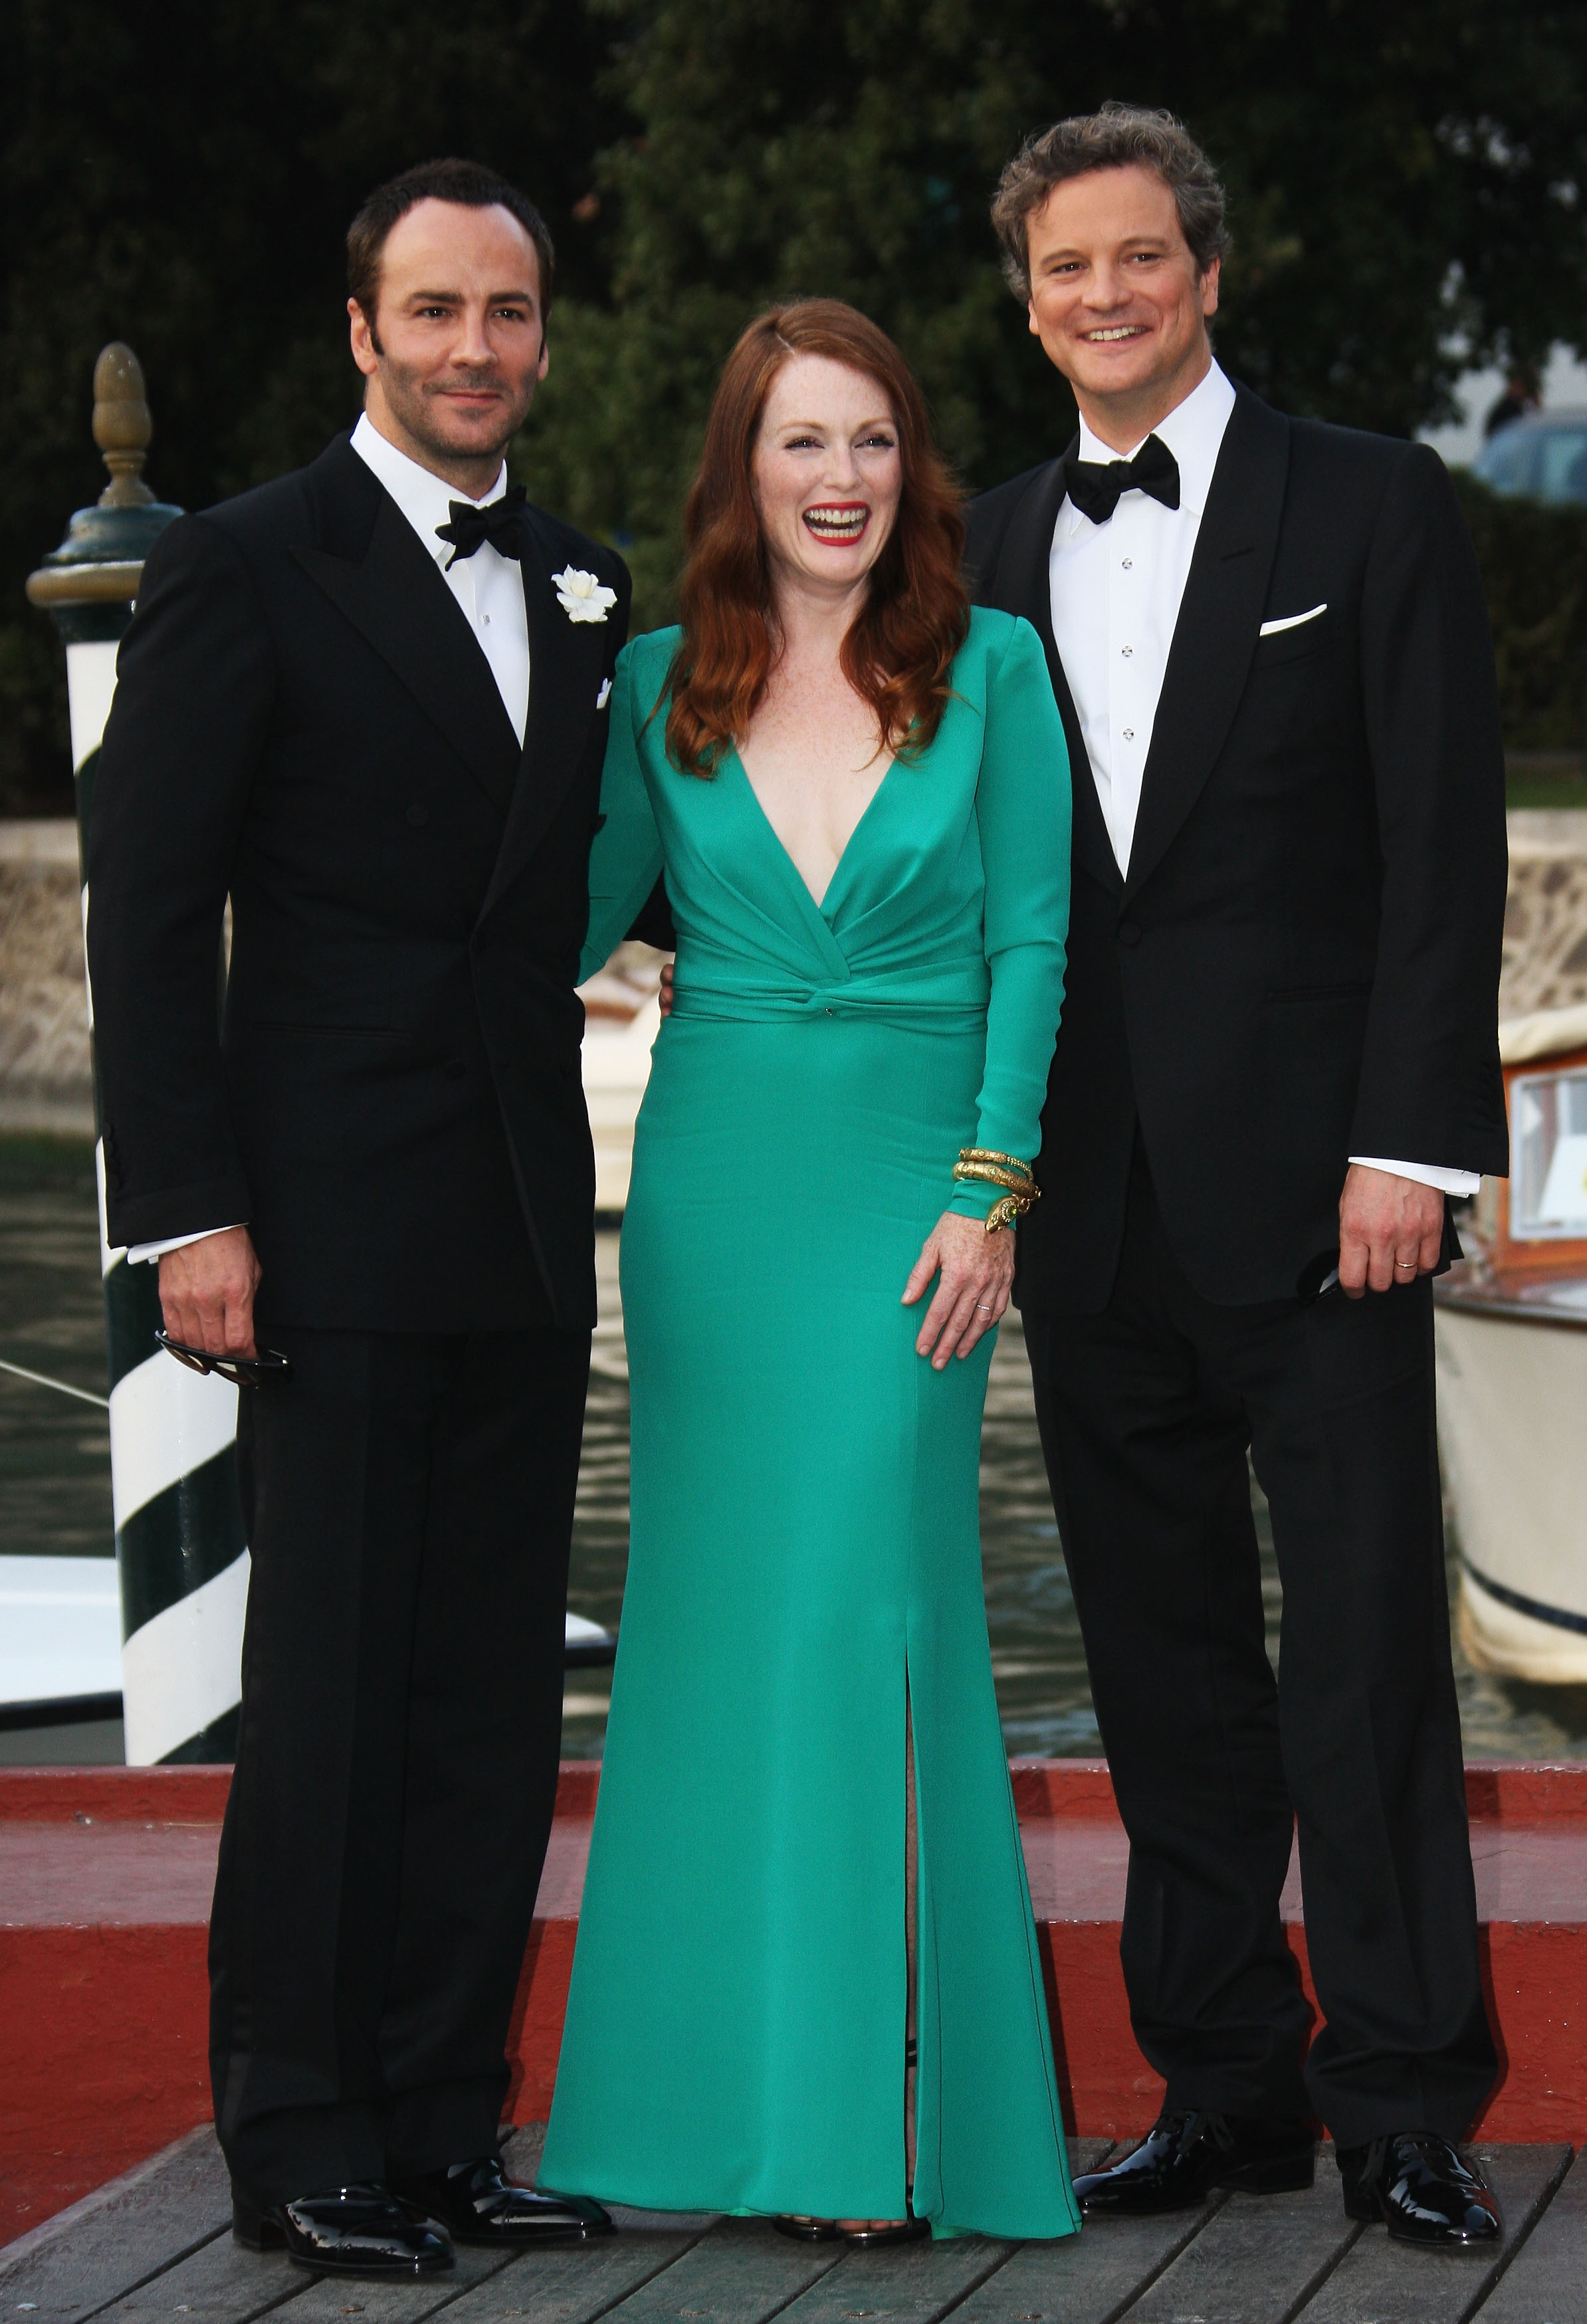 Will Julianne Moore Wear Tom Ford to The Oscars?